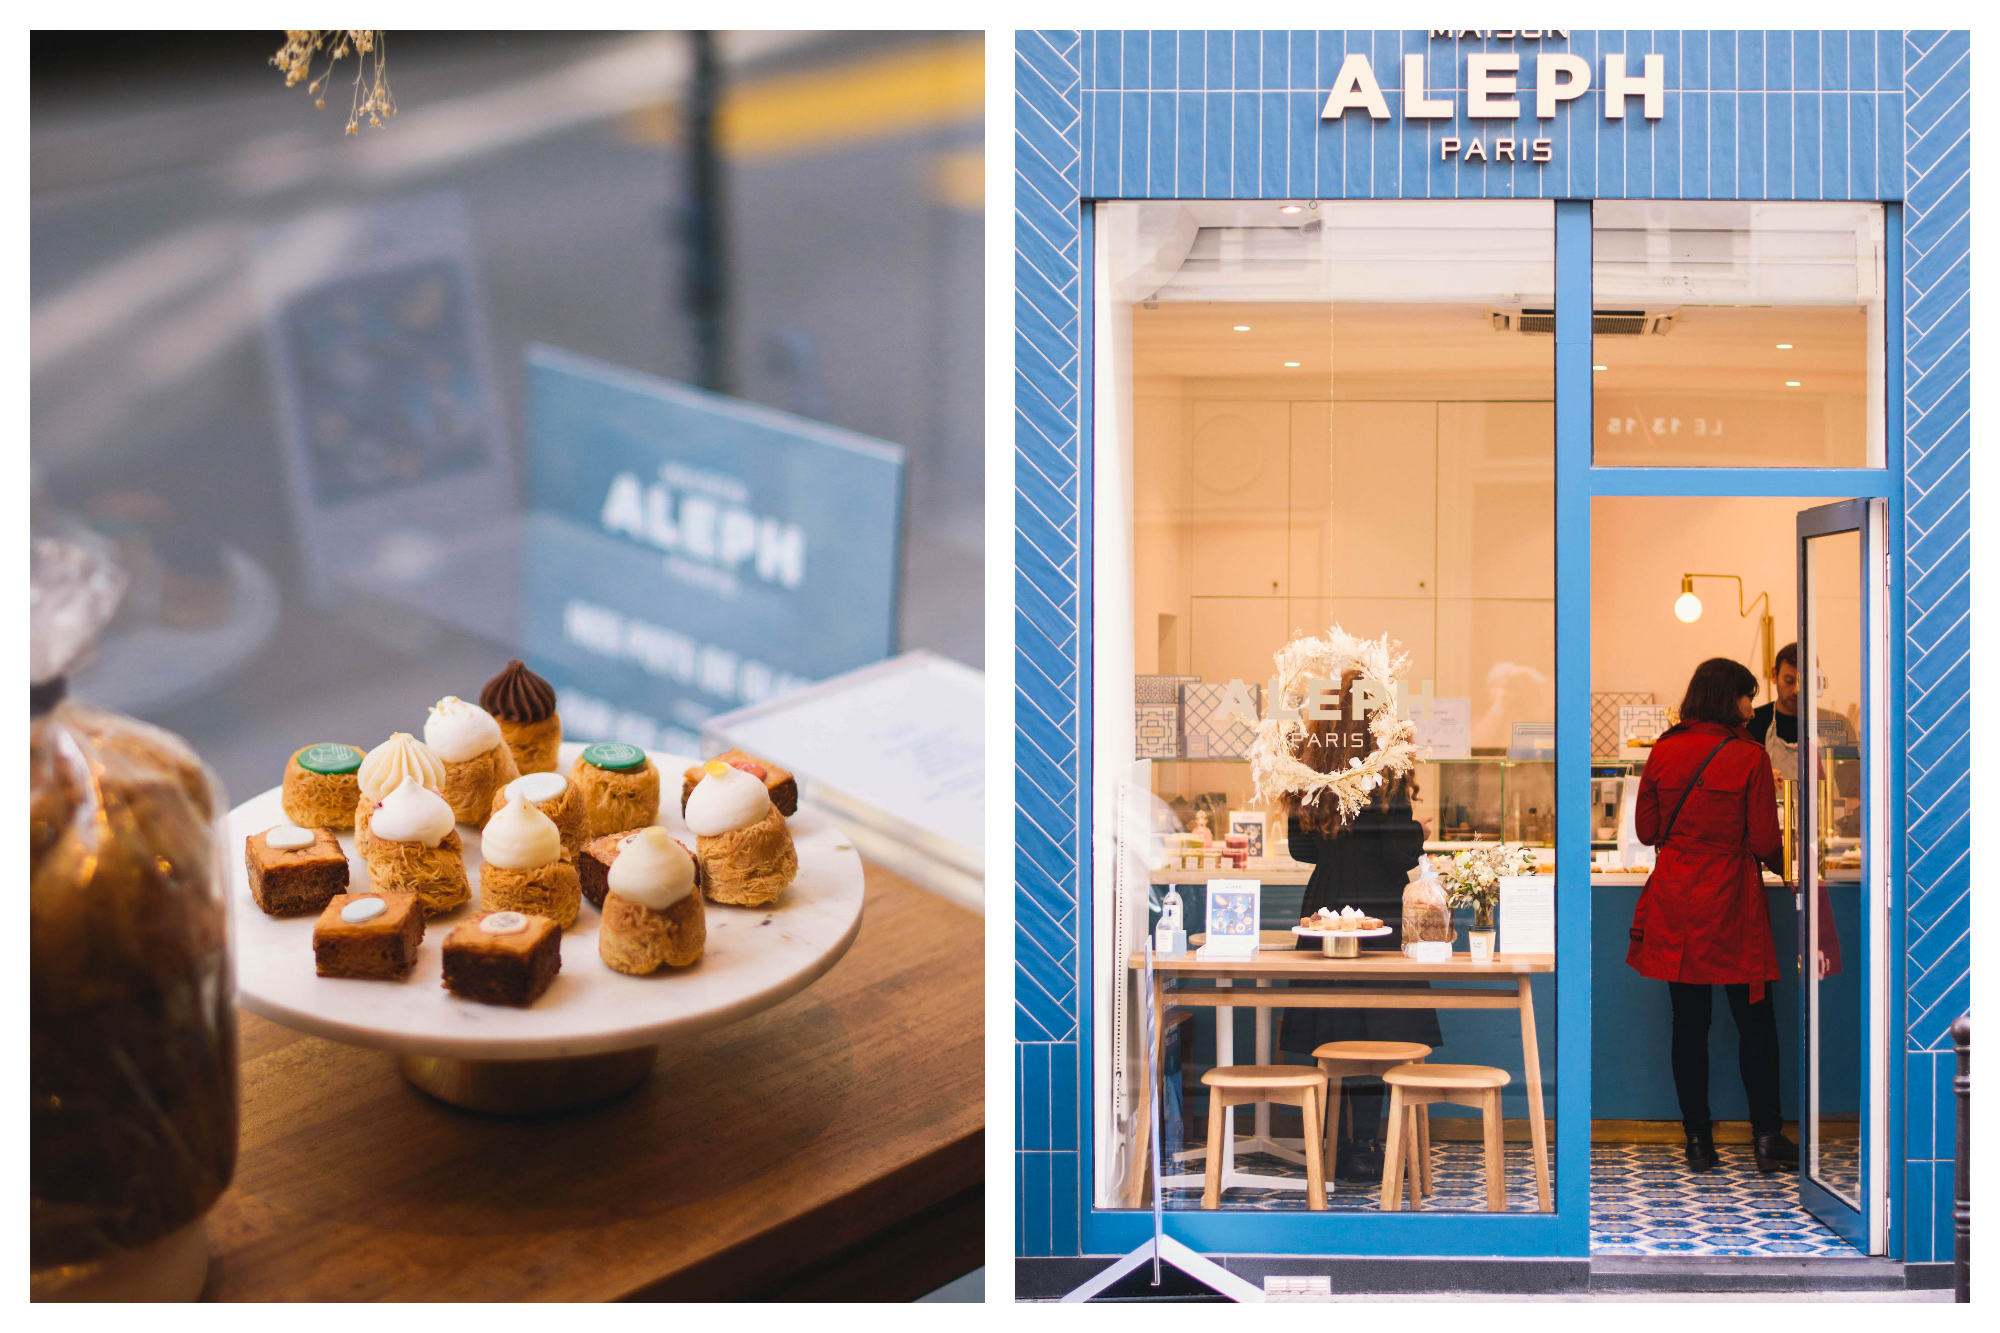 On left: A plate of miniature pastries sit in a sunlit window of Maison Aleph. Called nids, they are shaped like birds' nests and topped with fruit confit and whipped cream. On right: the sky-blue facade of Maison Aleph in Paris invites people to step inside for a treat.